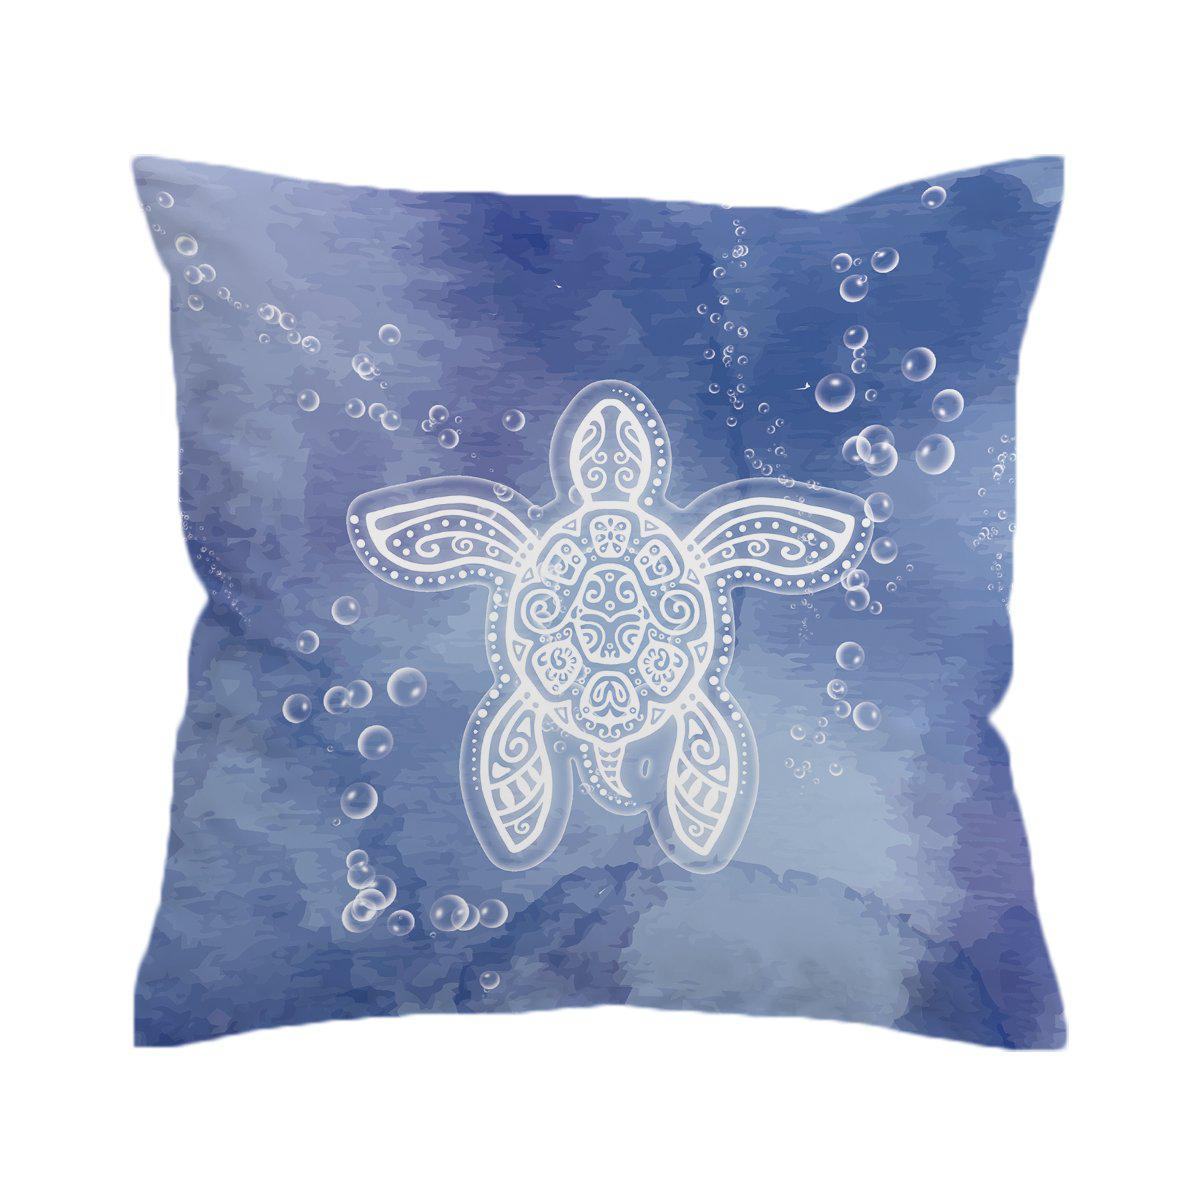 Honu Healing Pillow Cover-Coastal Passion